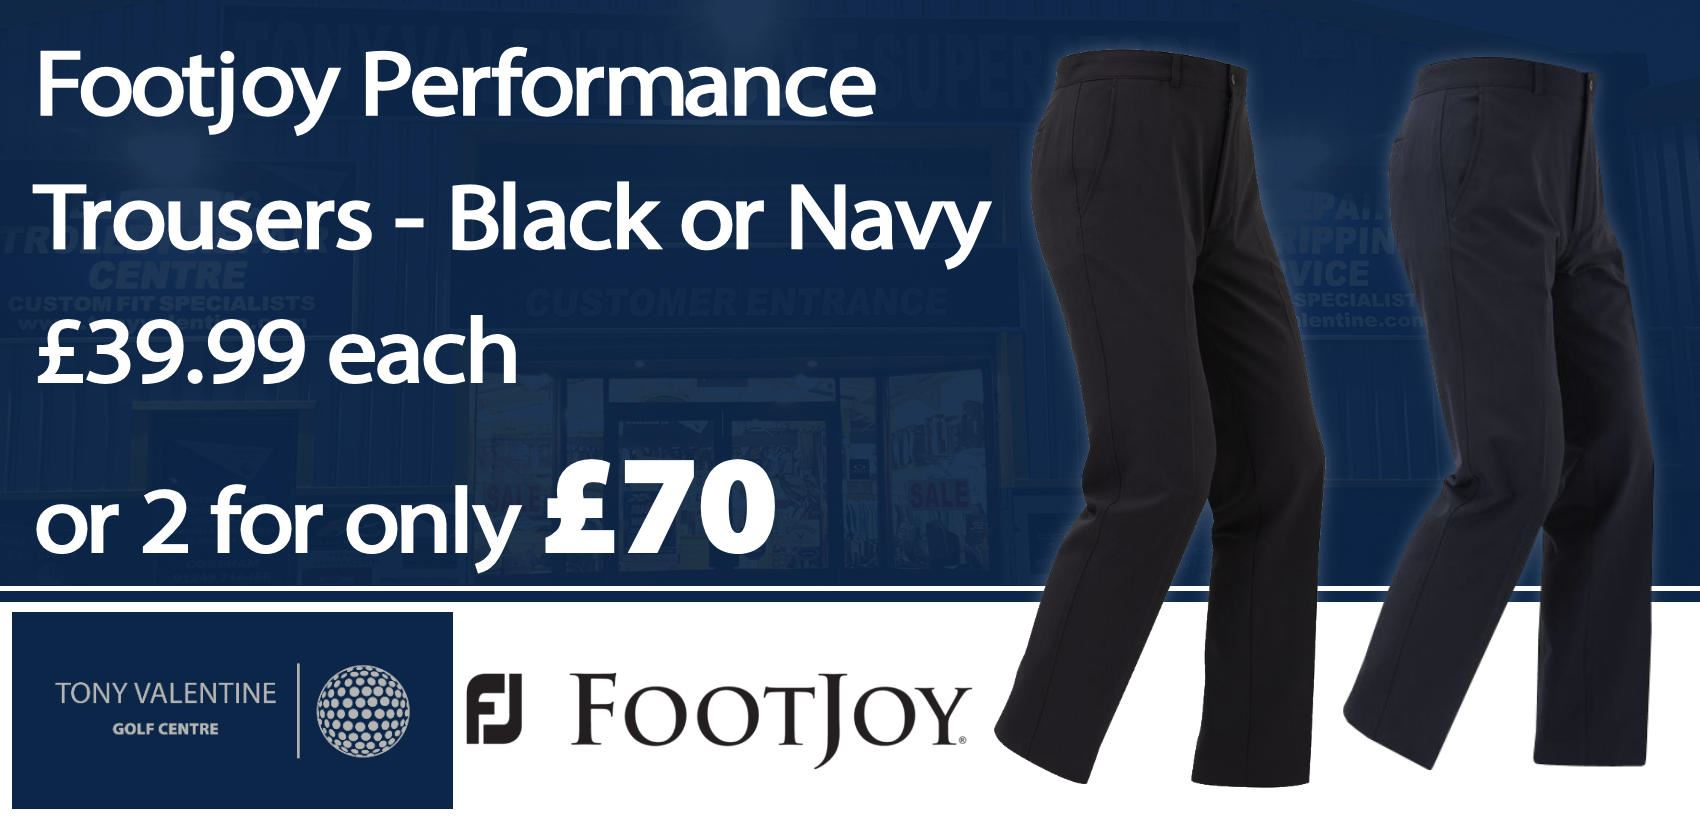 Footjoy Trouser Deal (2 for £70)